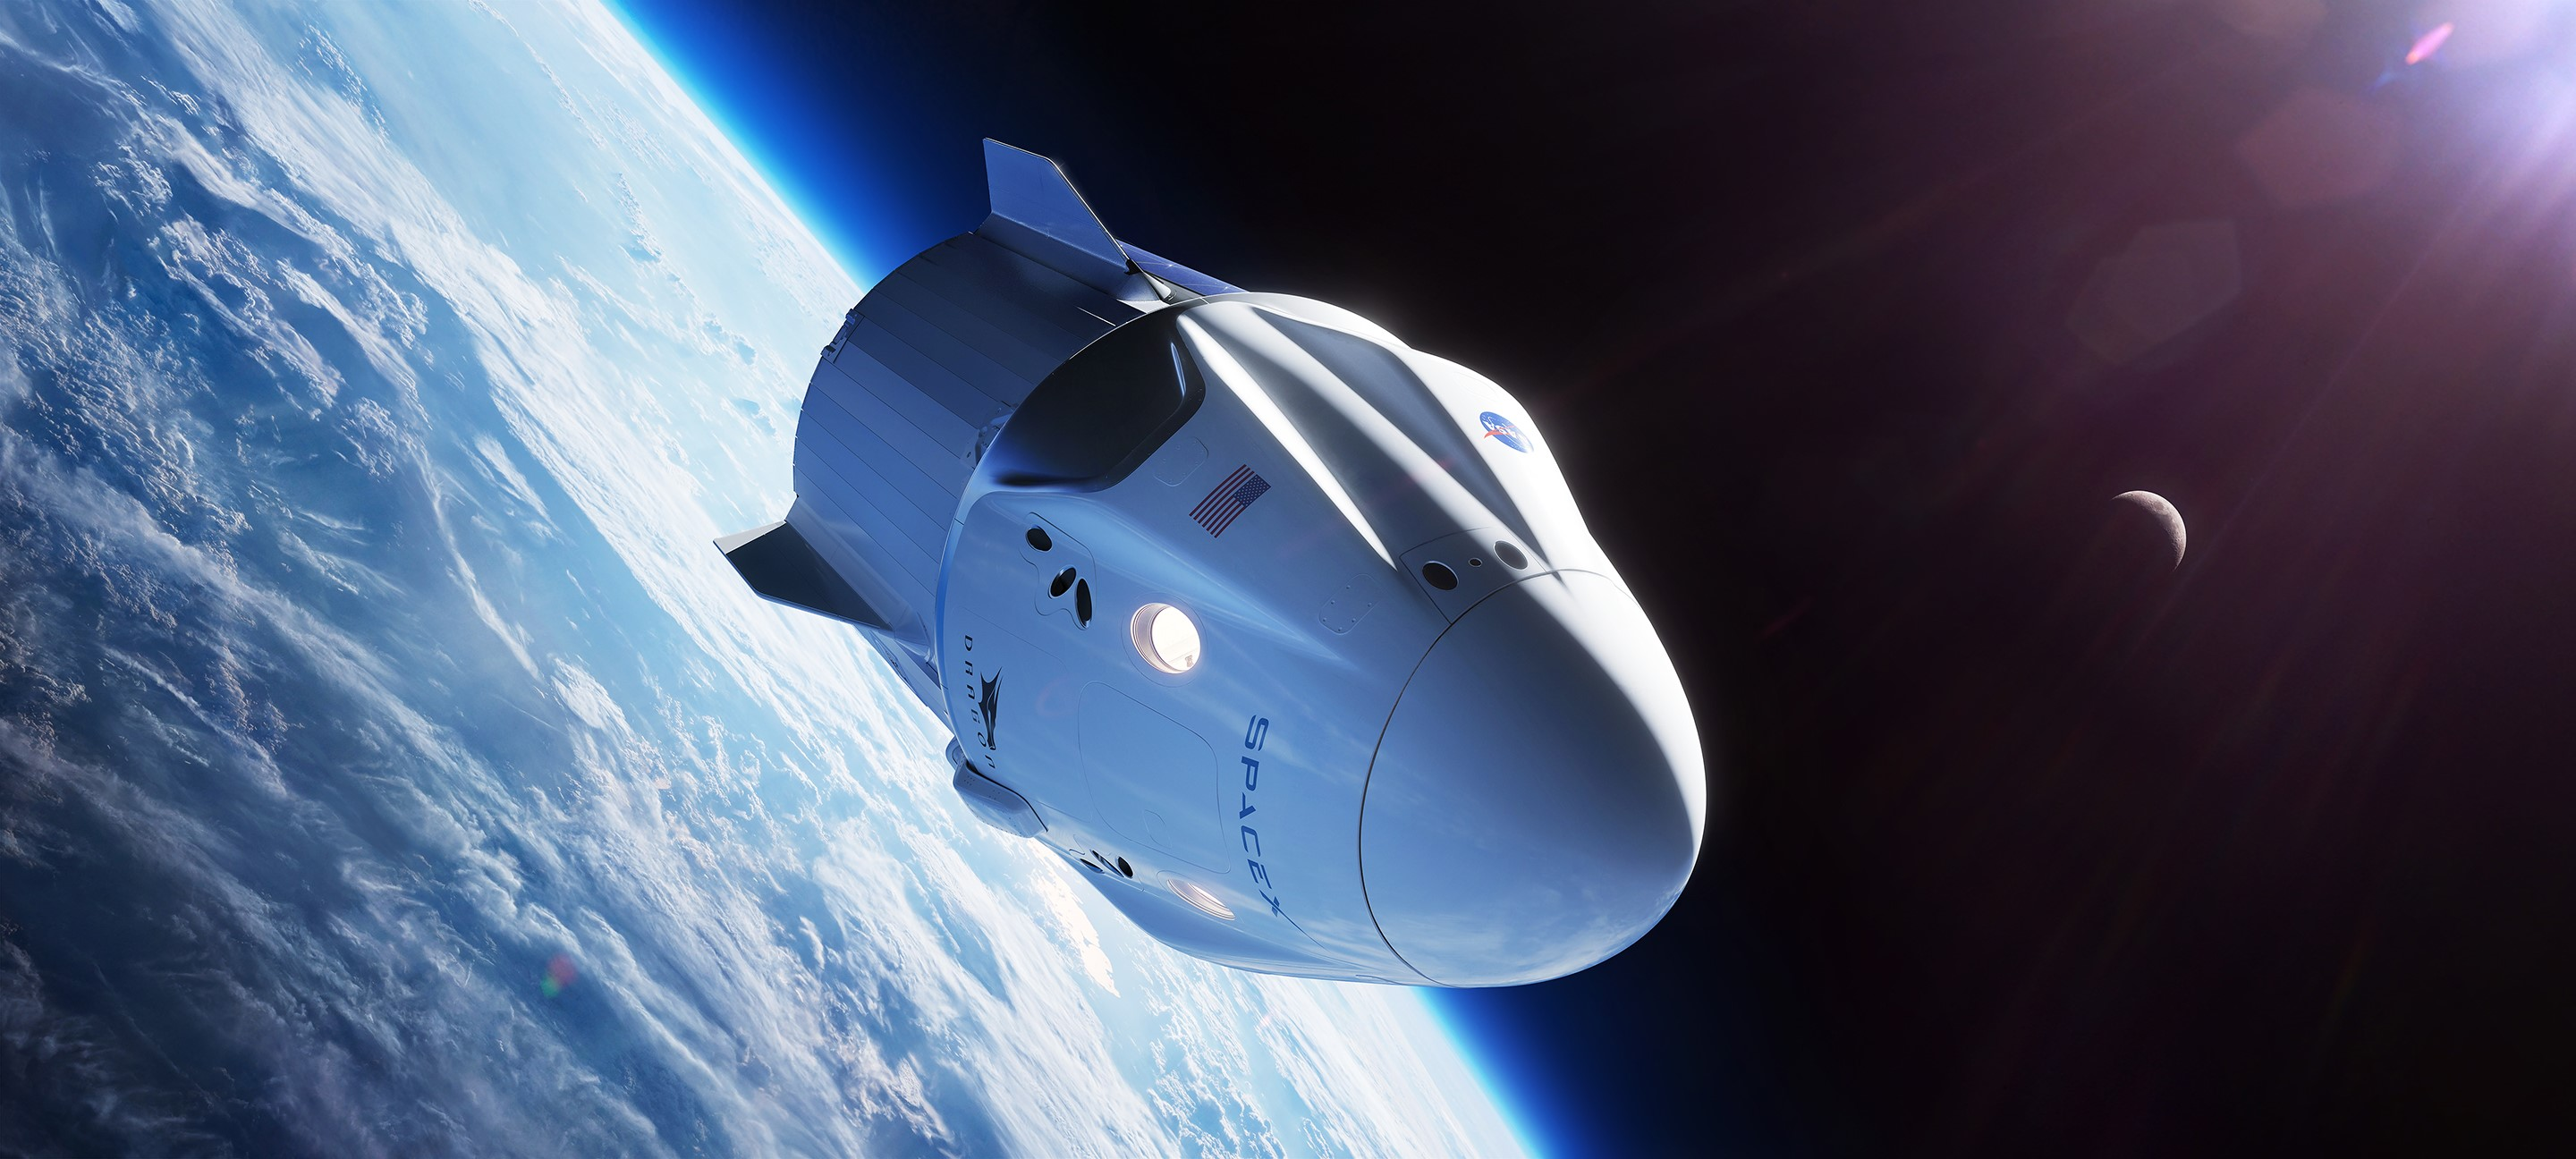 SpaceX's Crew Dragon and Falcon 9 Block 5 rocket are ...